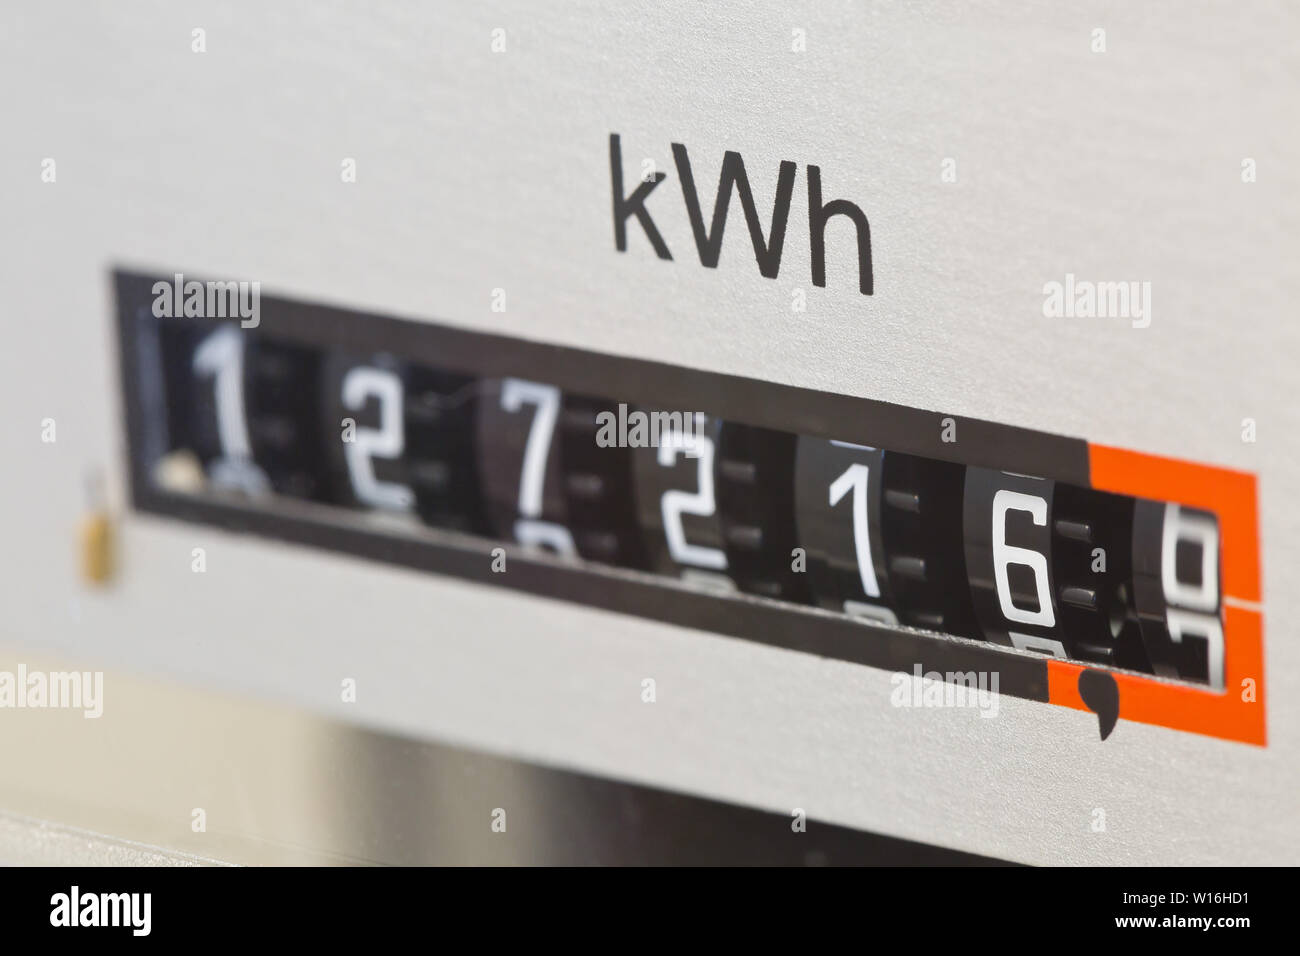 Close up of electric meter reader showing used kWh in private residential home with selective focus - Stock Image